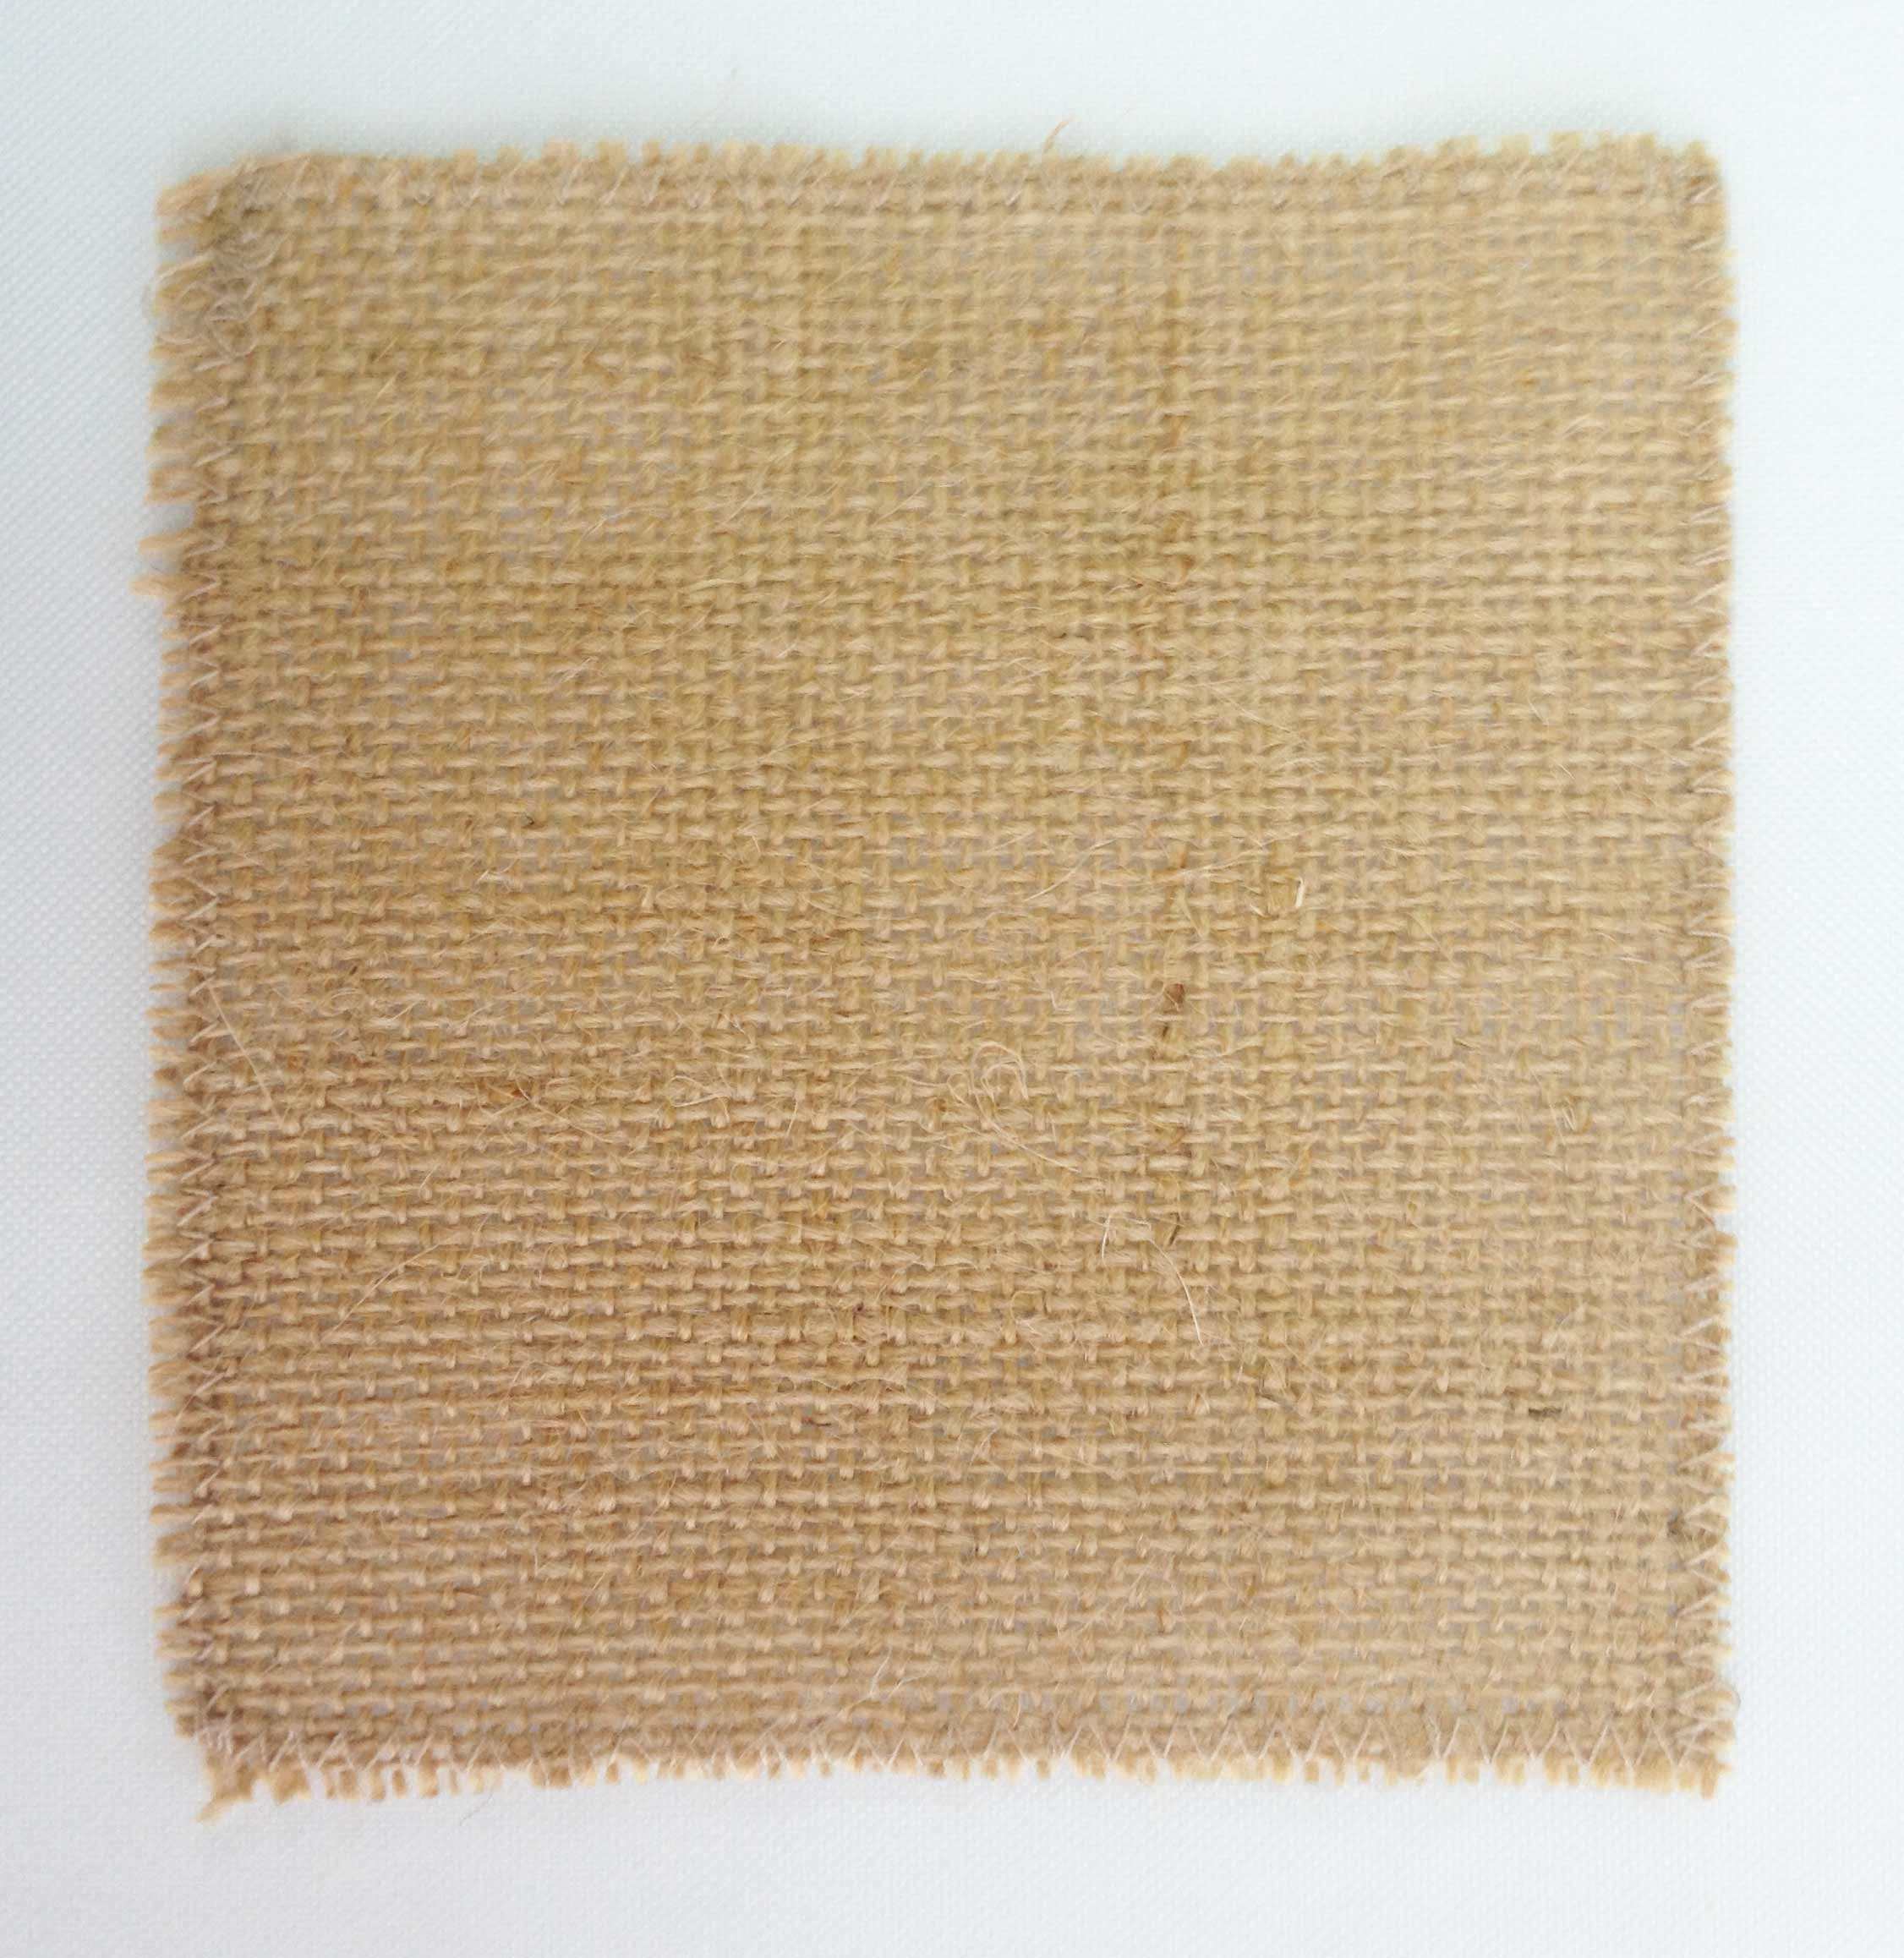 5 X 5 Burlap Squares Finished Edges Event Linens